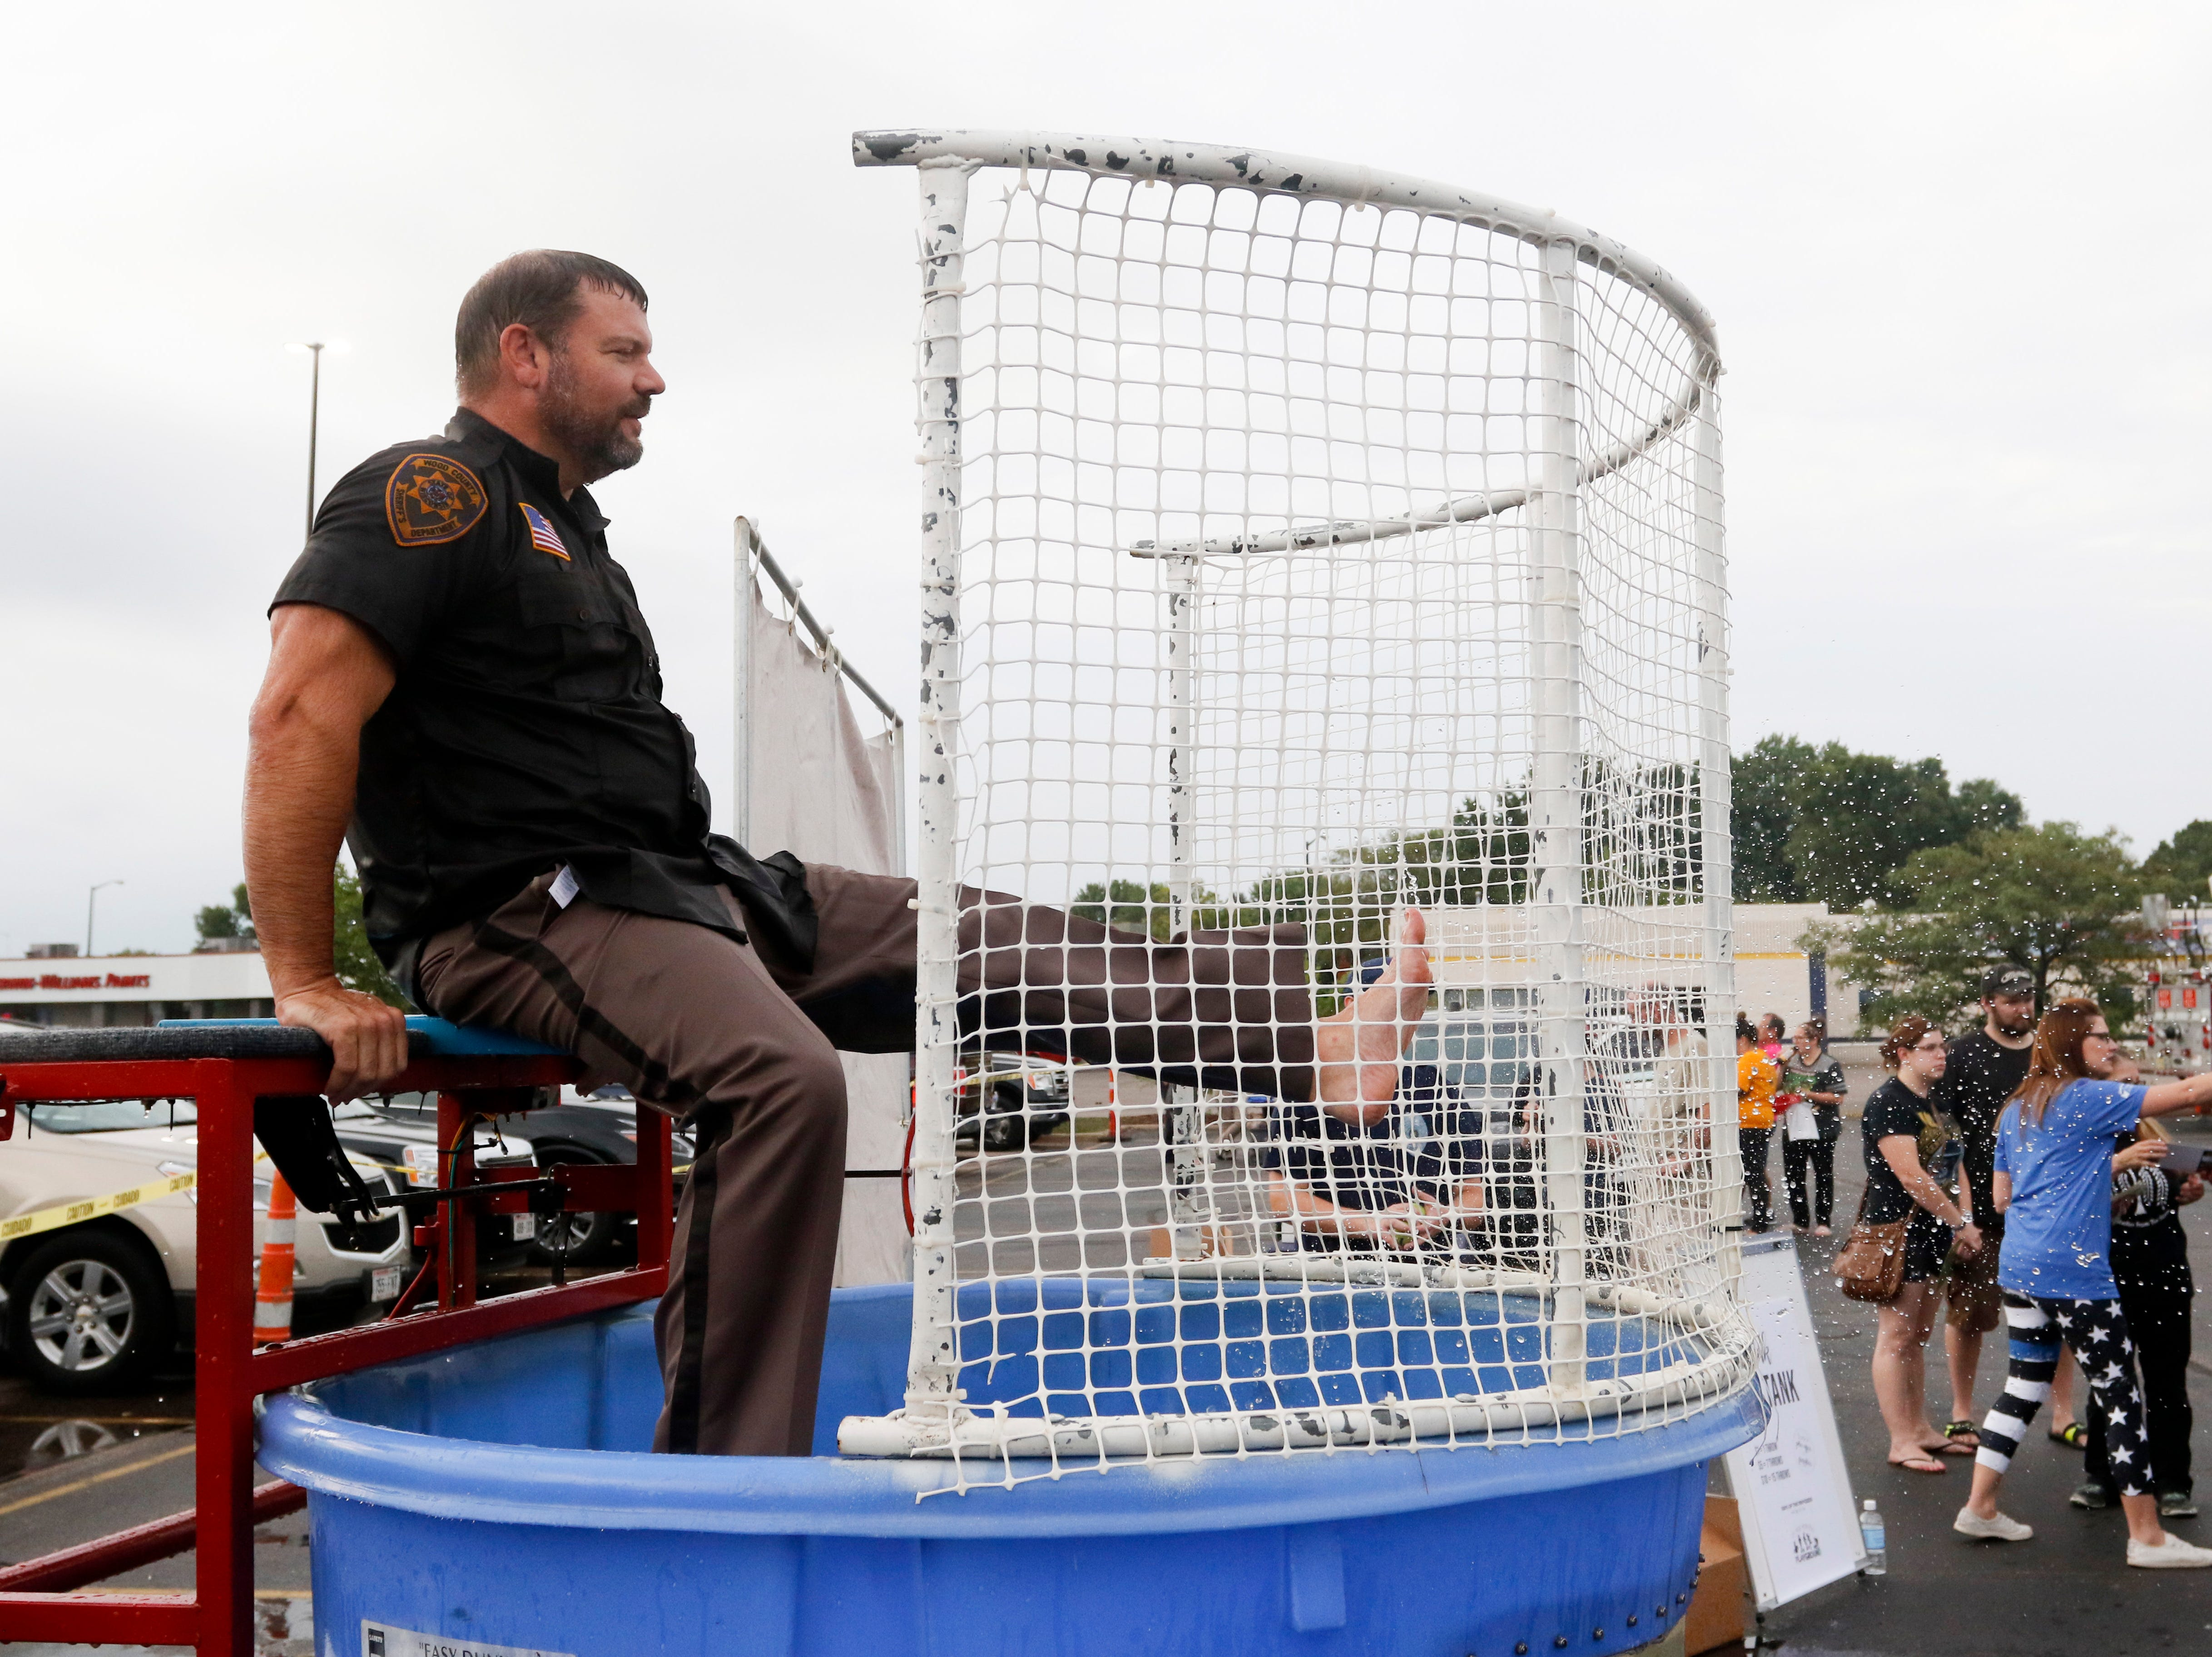 From the dunk tank, Wood County Sheriff's Department Capt. Shawn Becker splashes water at a thrower during the National Night Out event put on by the Wisconsin Rapids Police Department in the Crossview Church parking lot in Wisconsin Rapids Tuesday, August 7, 2018.